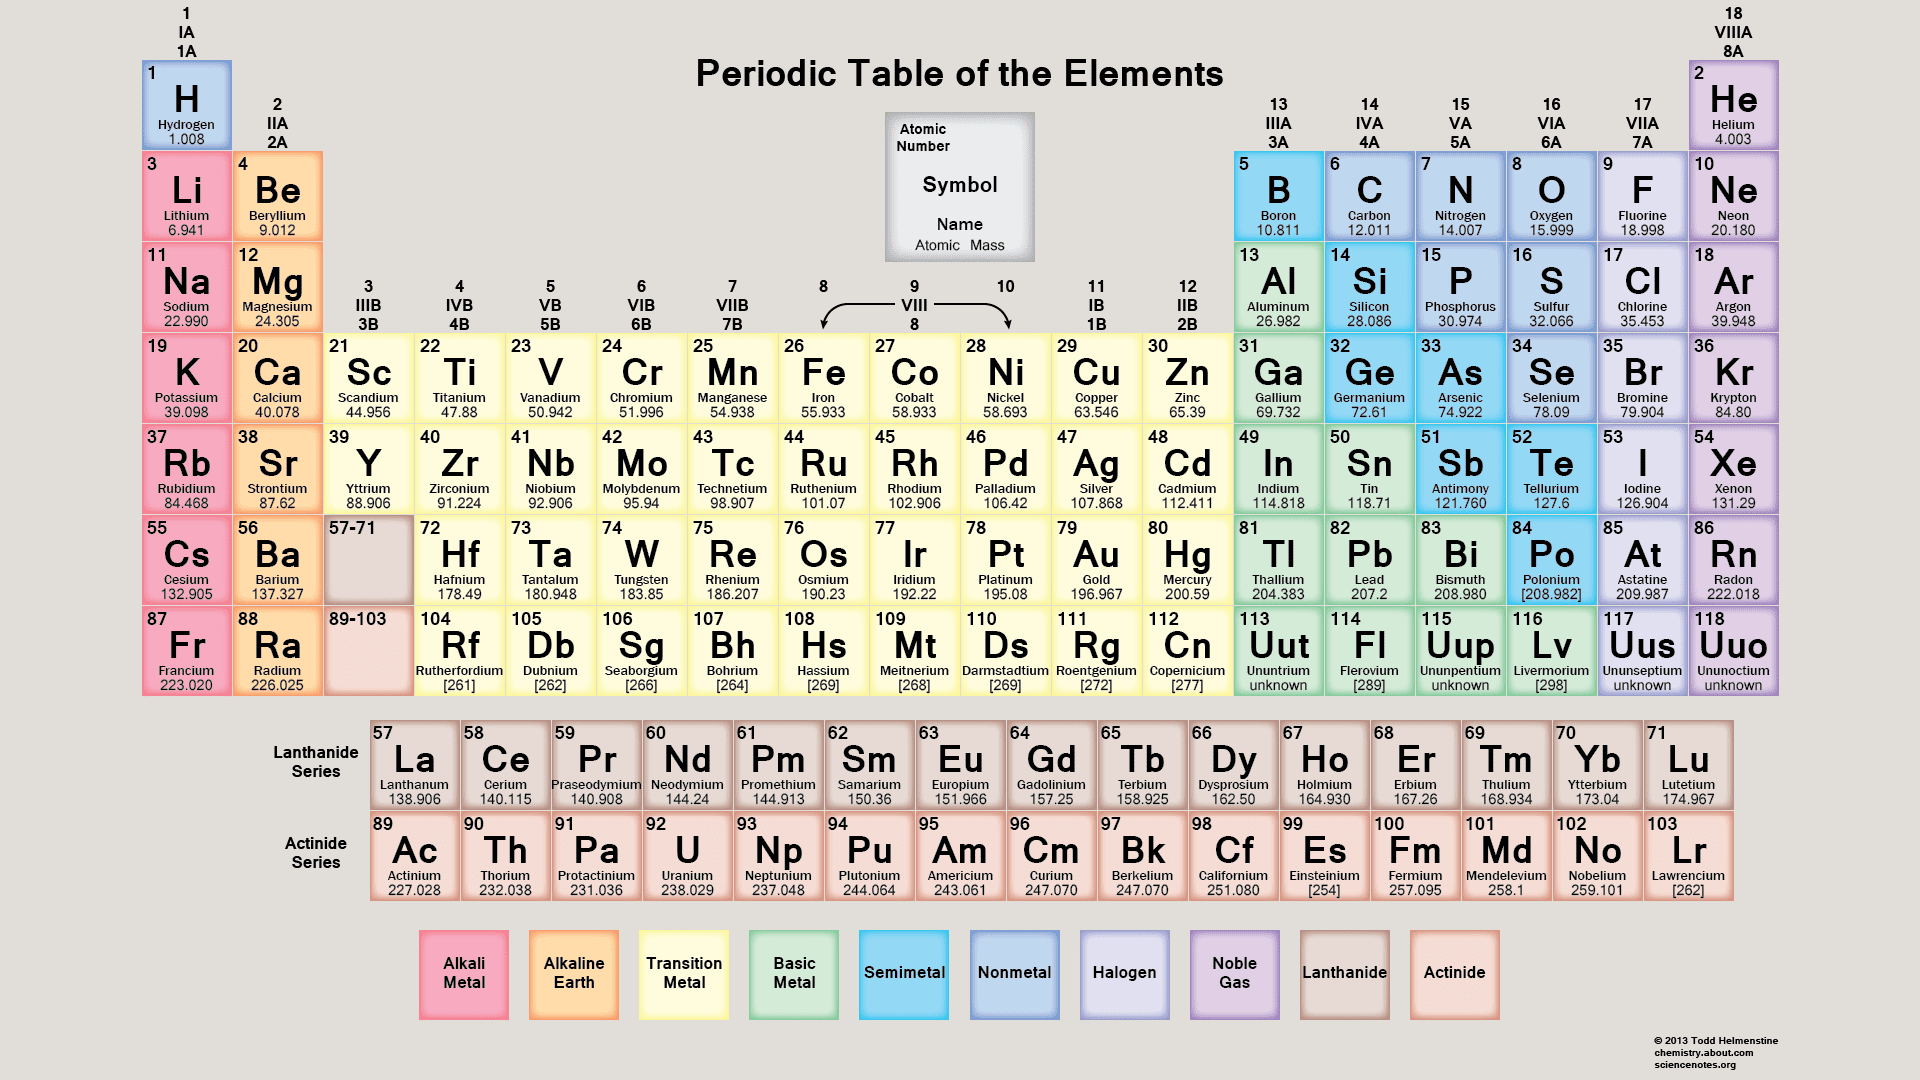 Free pdf chemistry worksheets to download or print chemistry free pdf chemistry worksheets to download or print periodic tablescience urtaz Choice Image